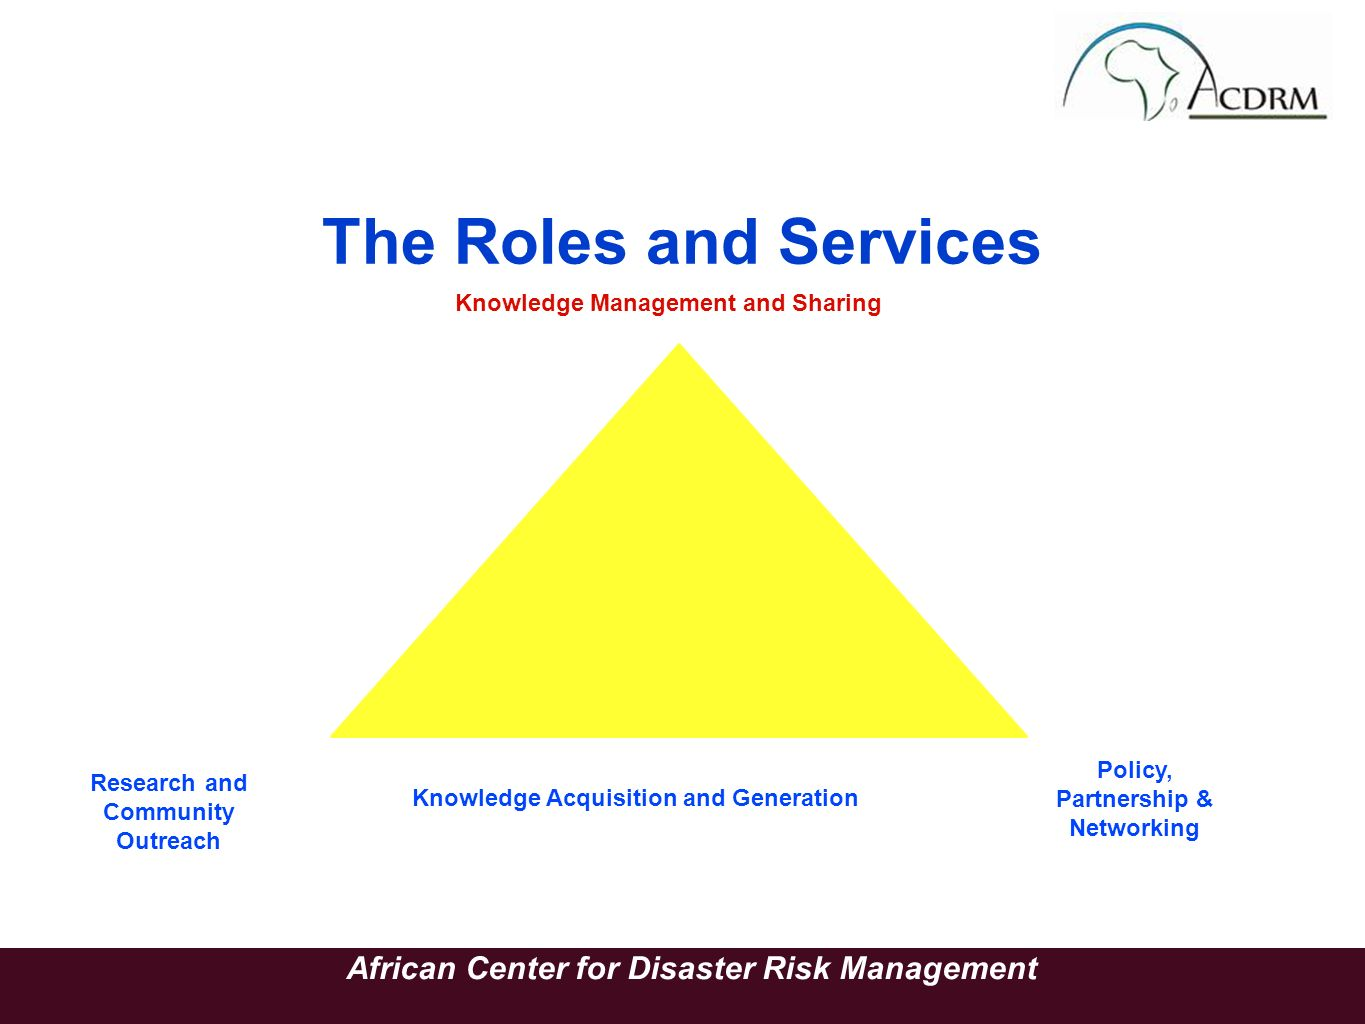 The Roles and Services African Center for Disaster Risk Management Knowledge Management and Sharing Knowledge Acquisition and Generation Research and Community Outreach Policy, Partnership & Networking